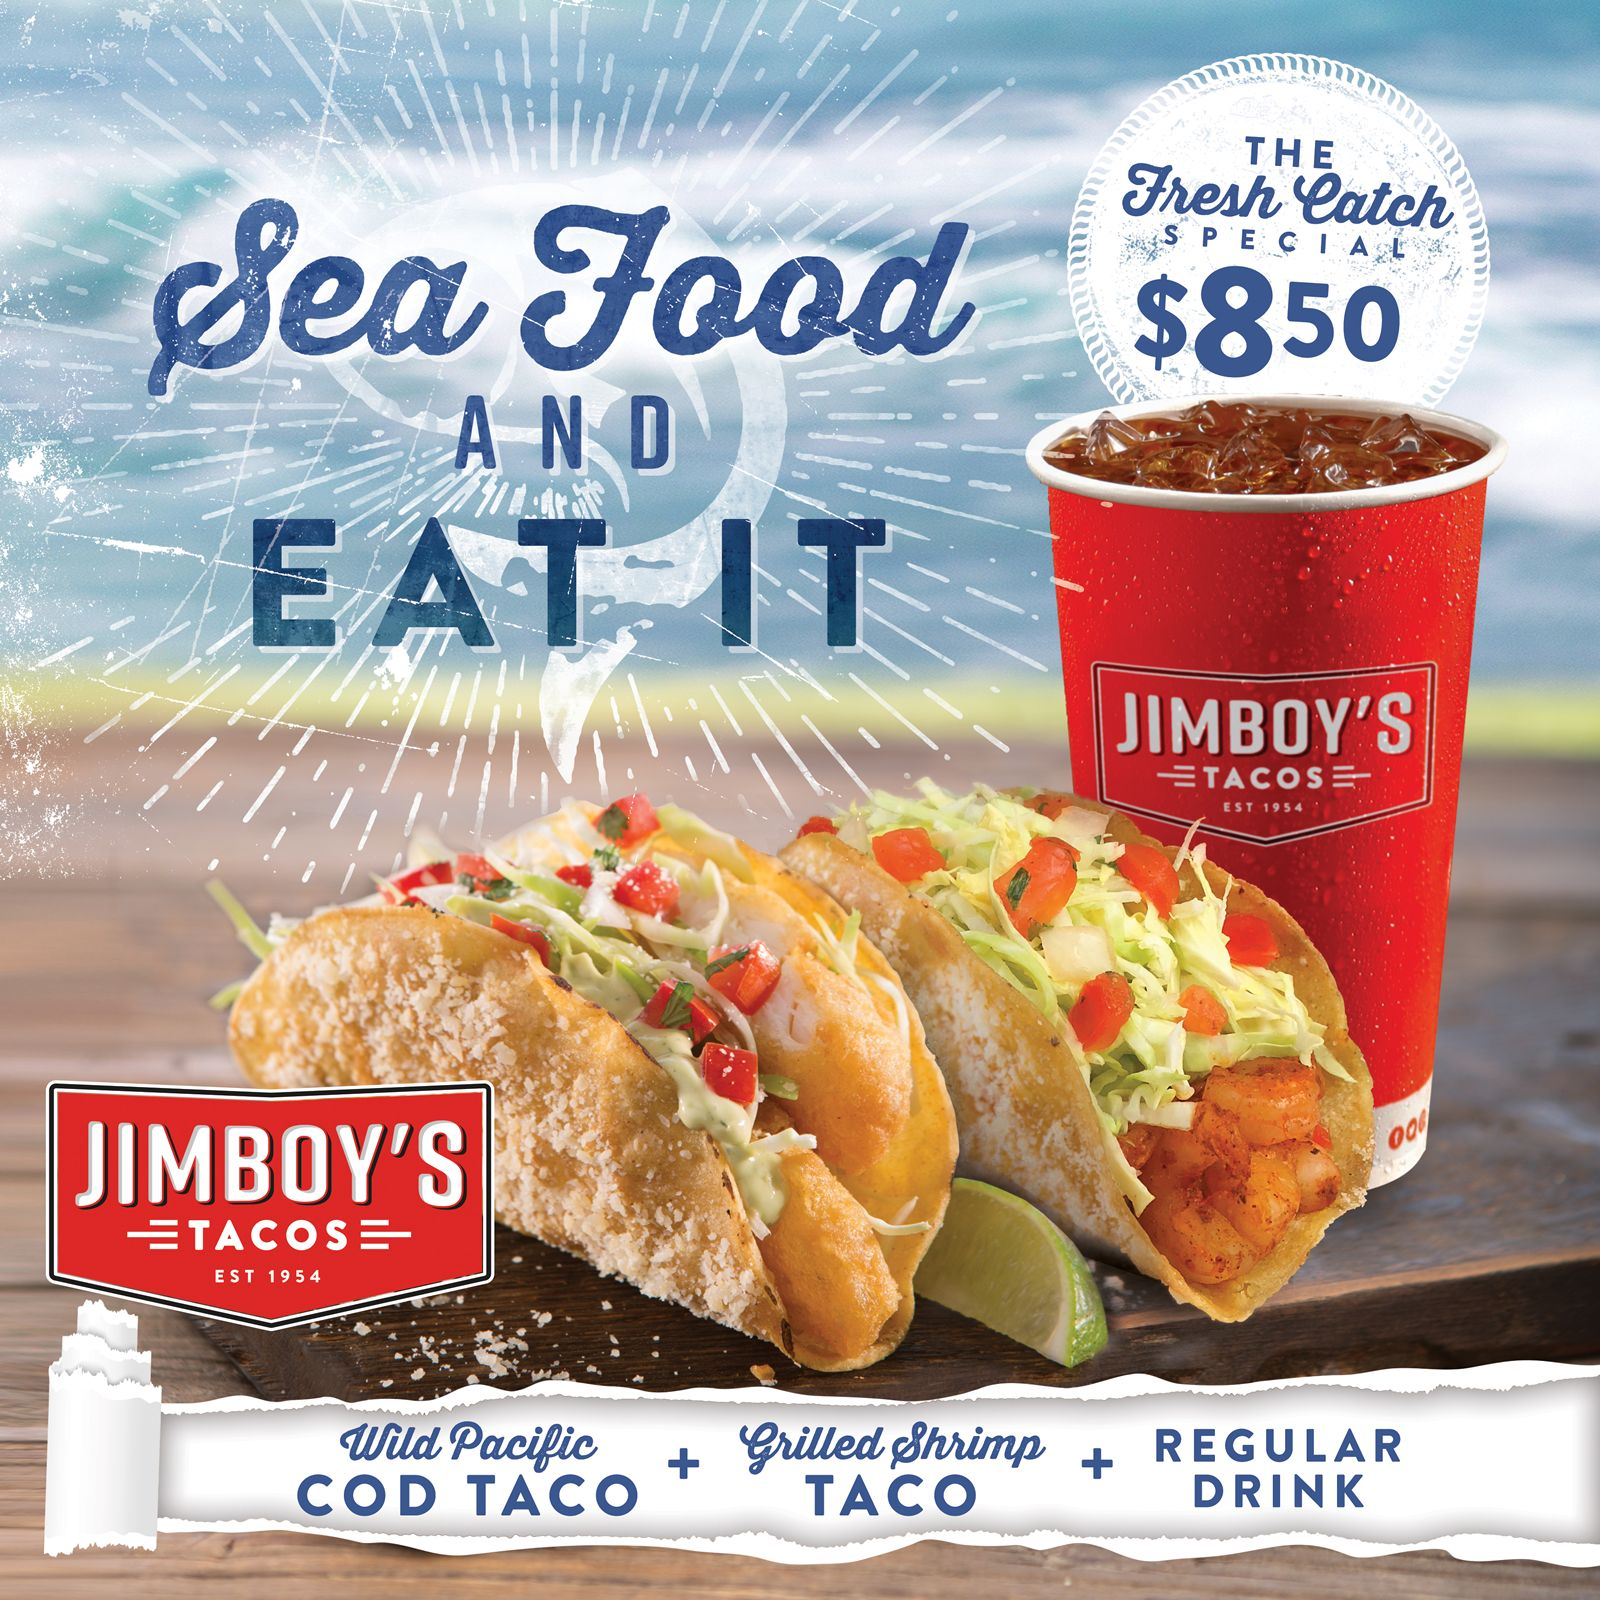 Jimboy's Tacos Seafood Combo is Off the Hook